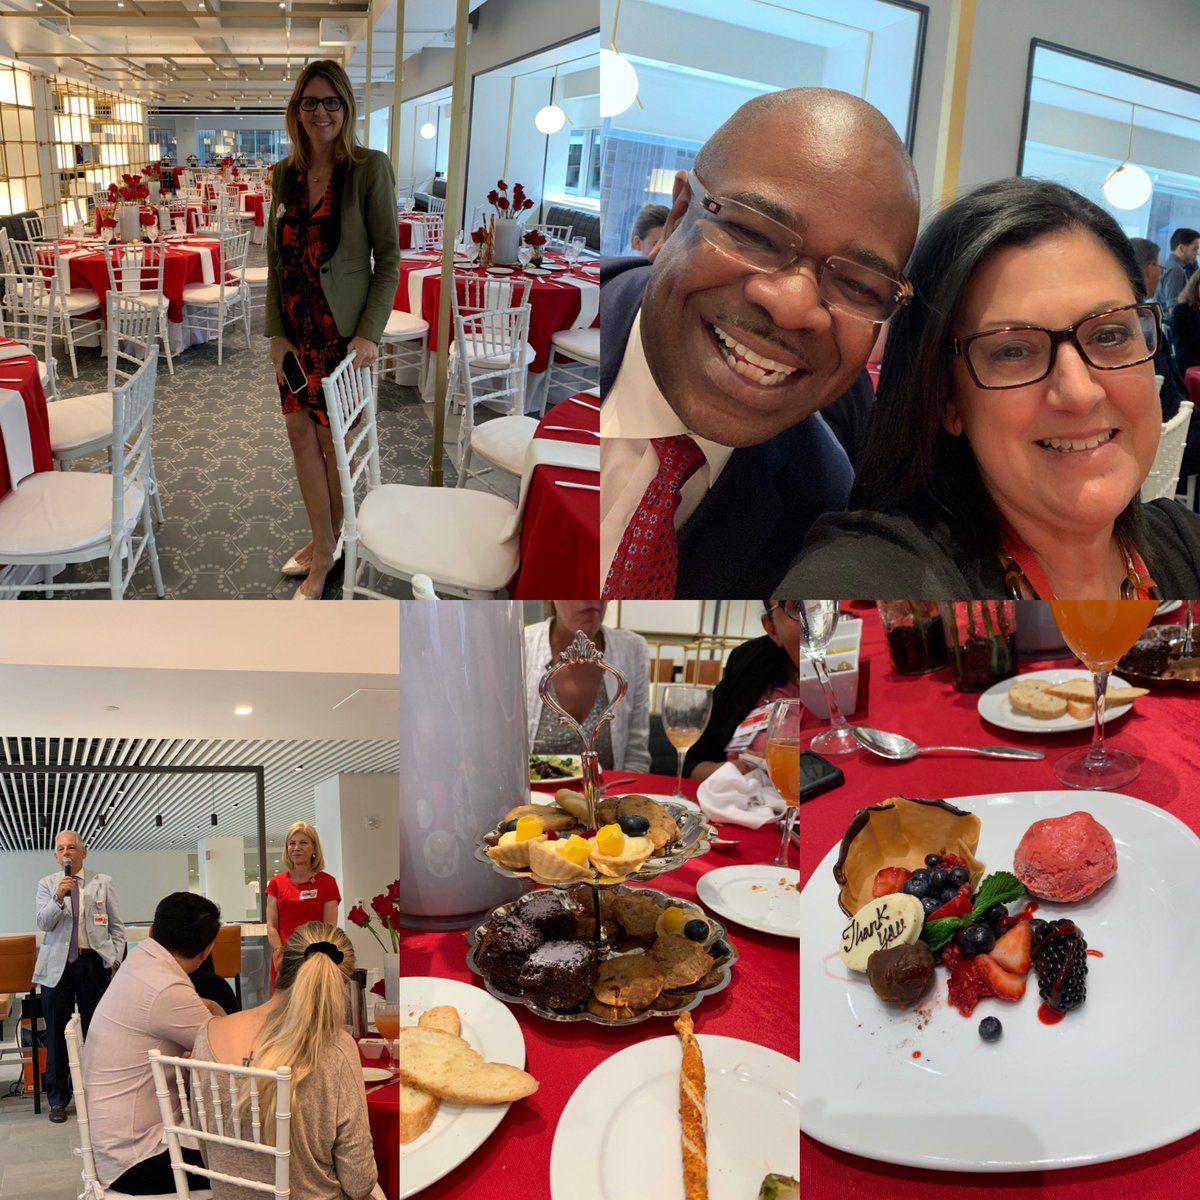 Top 5 Hospital Celebration Planning Committee Luncheon at 466 Lexington today! Kim Solop did a great job in planning this as usual!!! @shaunesmithesq @nyphospital #ProudToBeNYP<br>http://pic.twitter.com/tbLOX0xxce